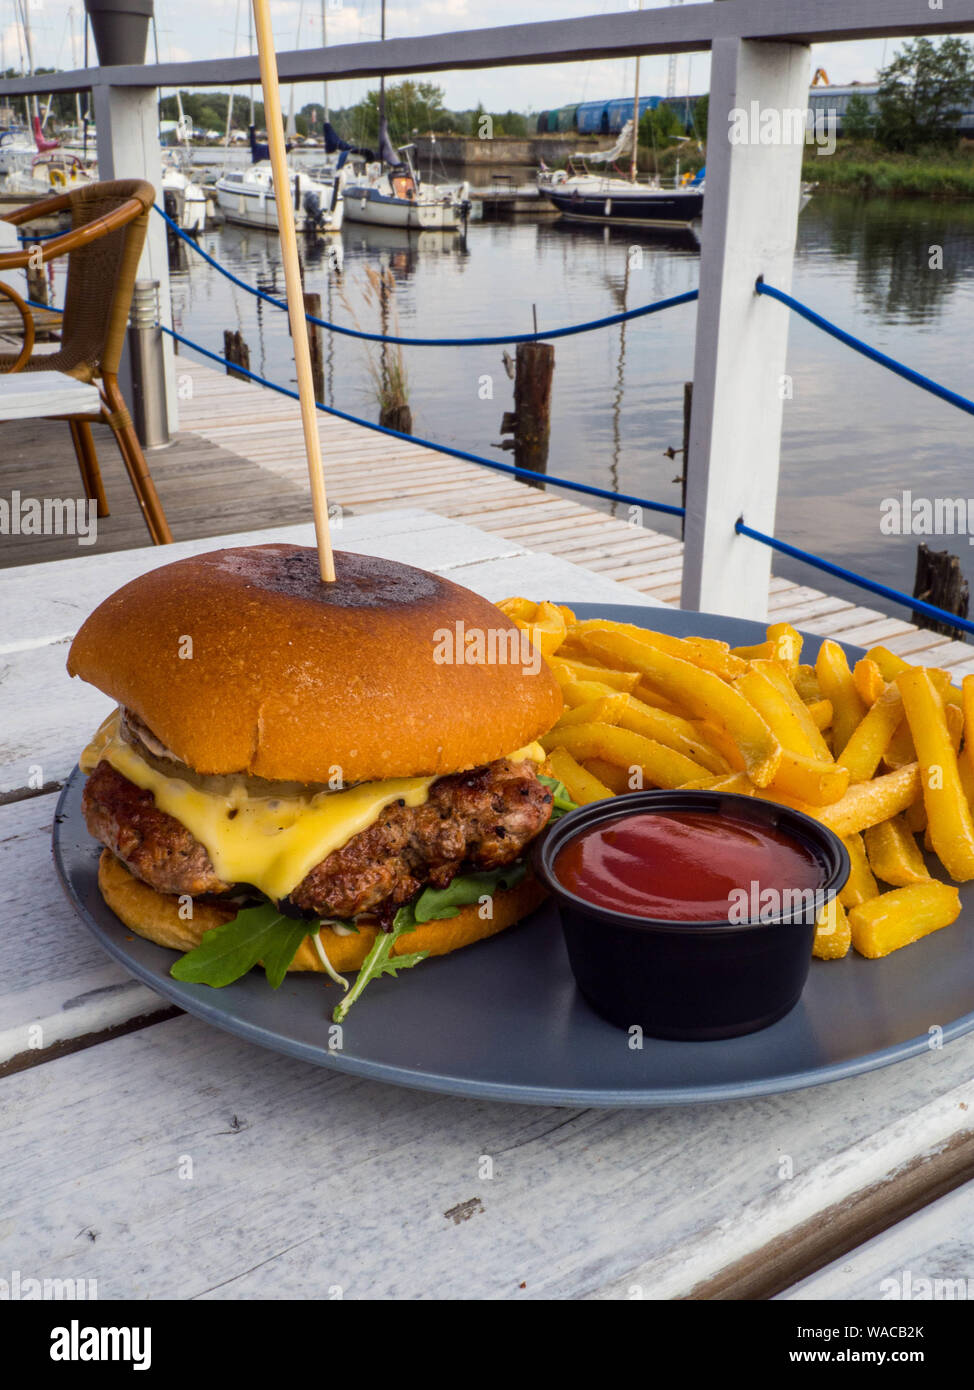 tasty burger with french fries and ketchup outdoor in wooden